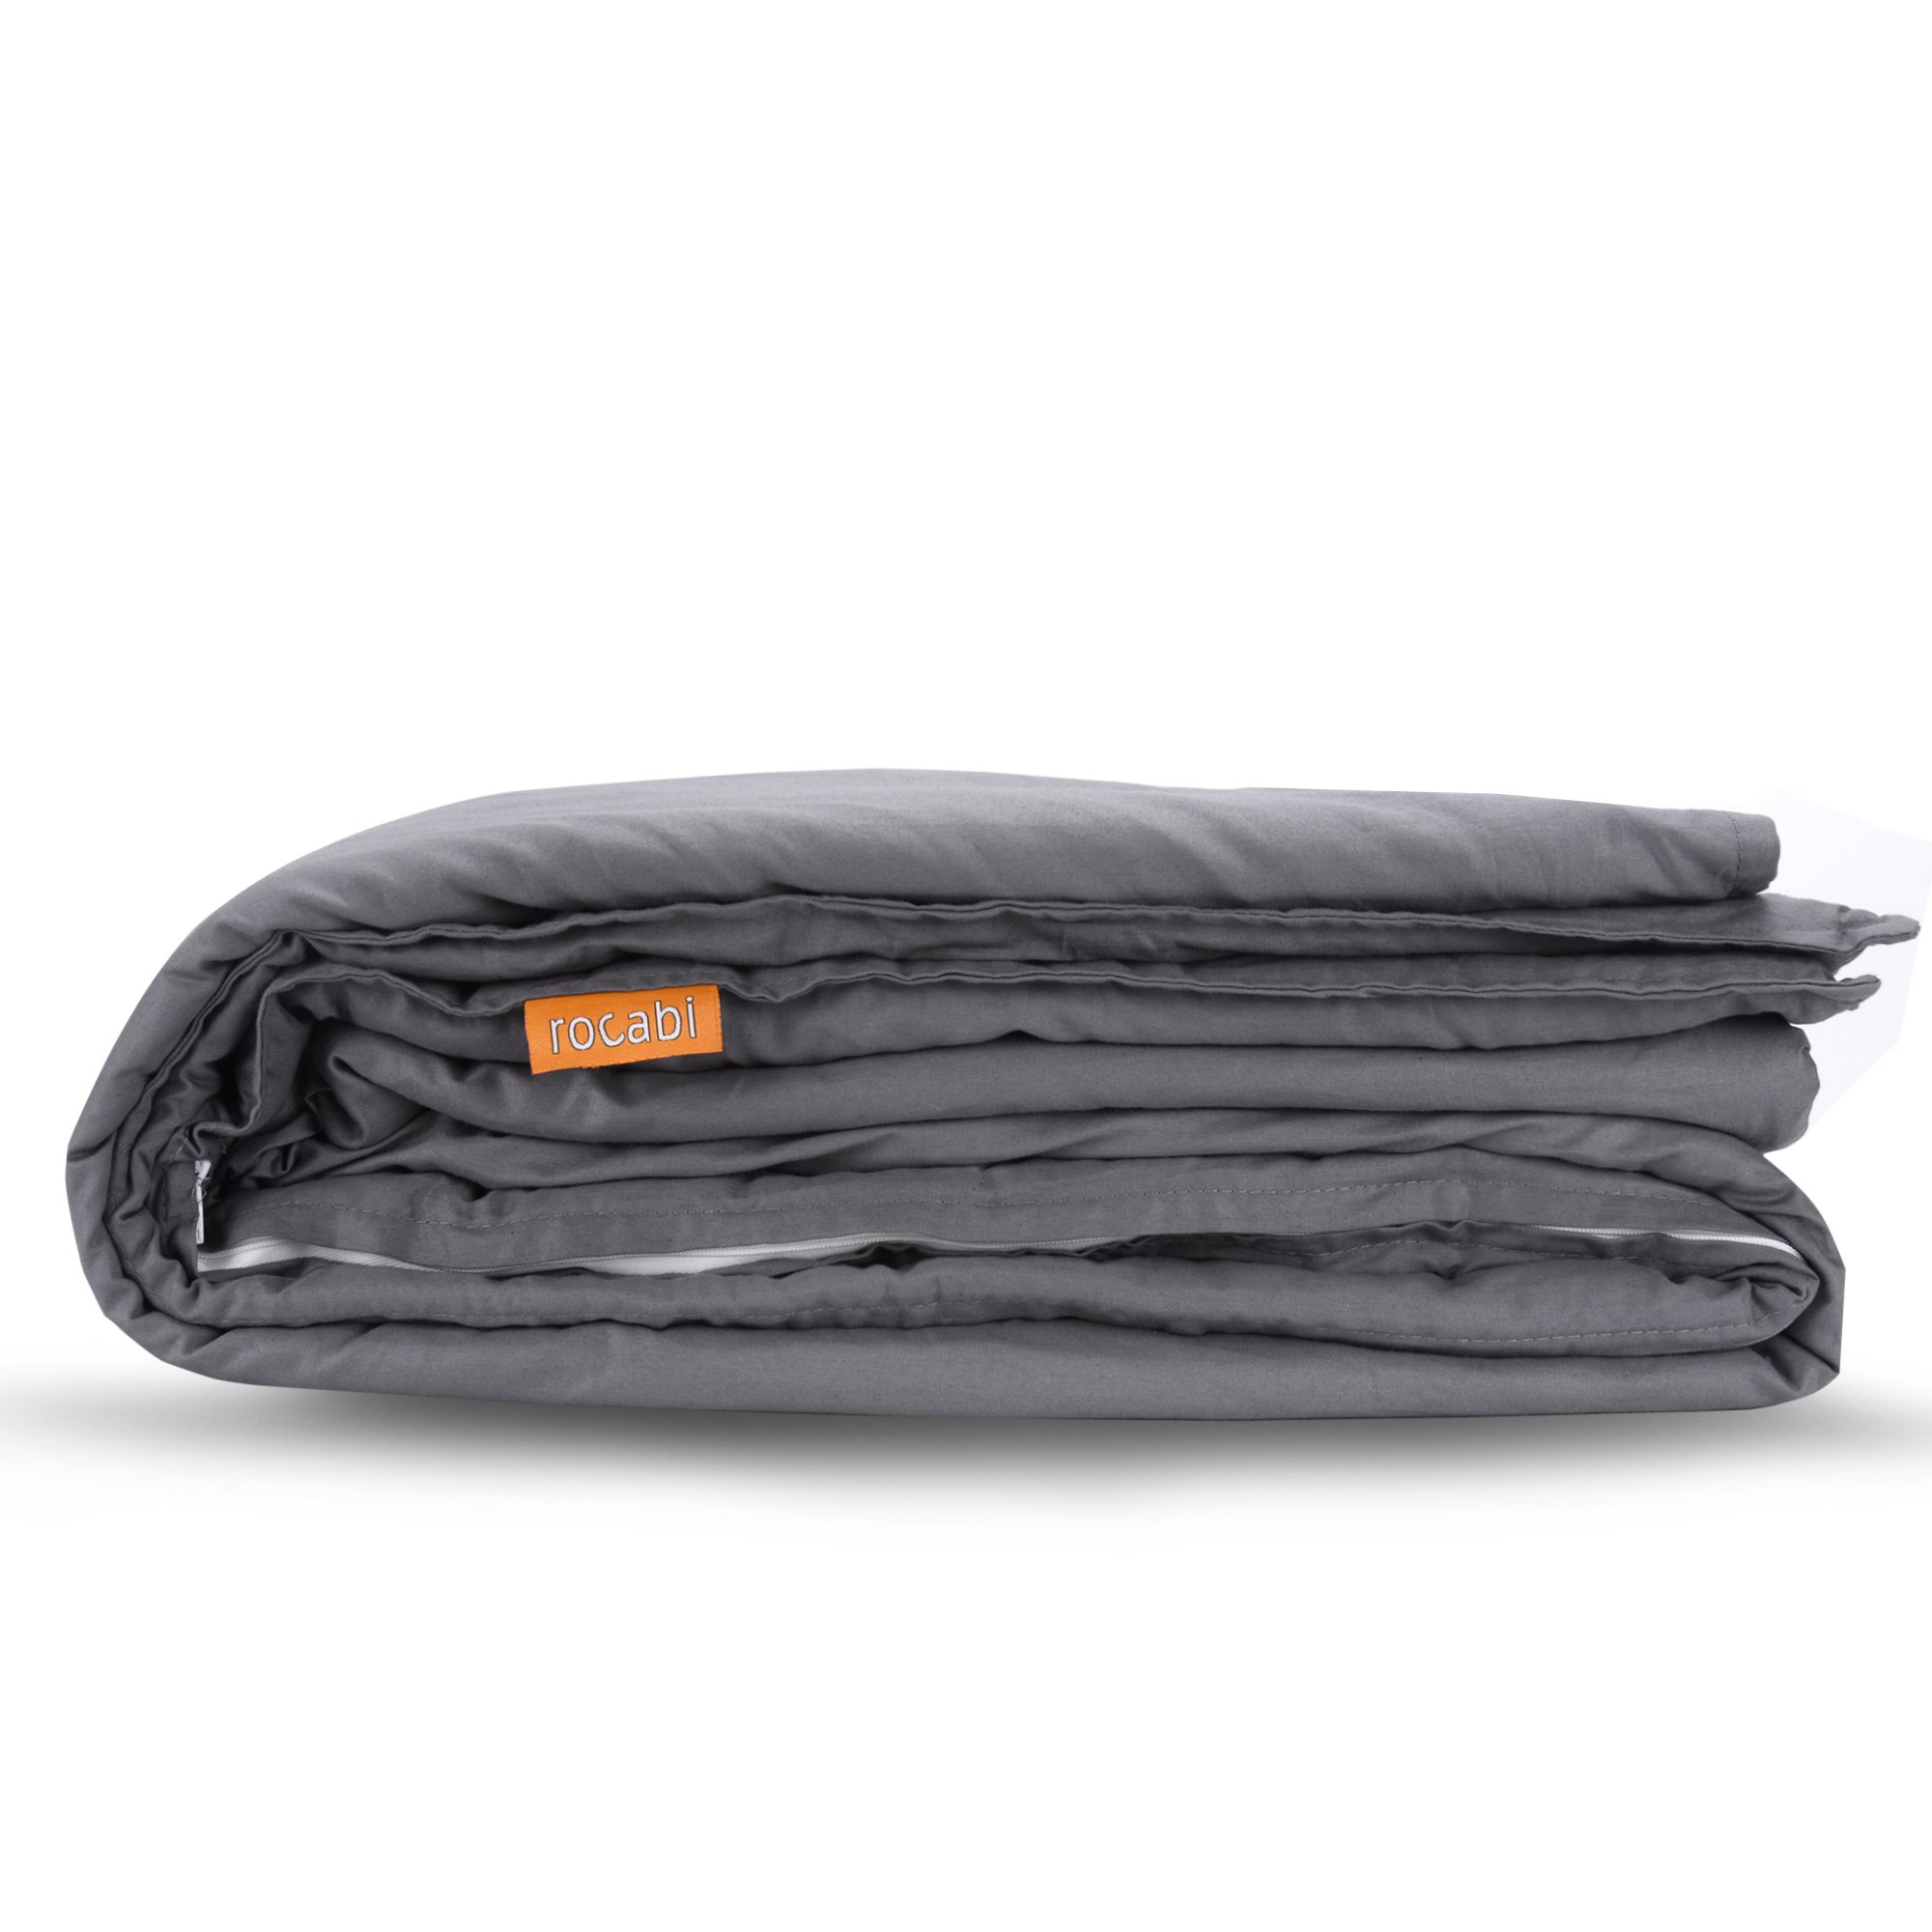 rocabi (Grey Cotton 80''x86'') Cotton Cover Only for Weighted Blanket